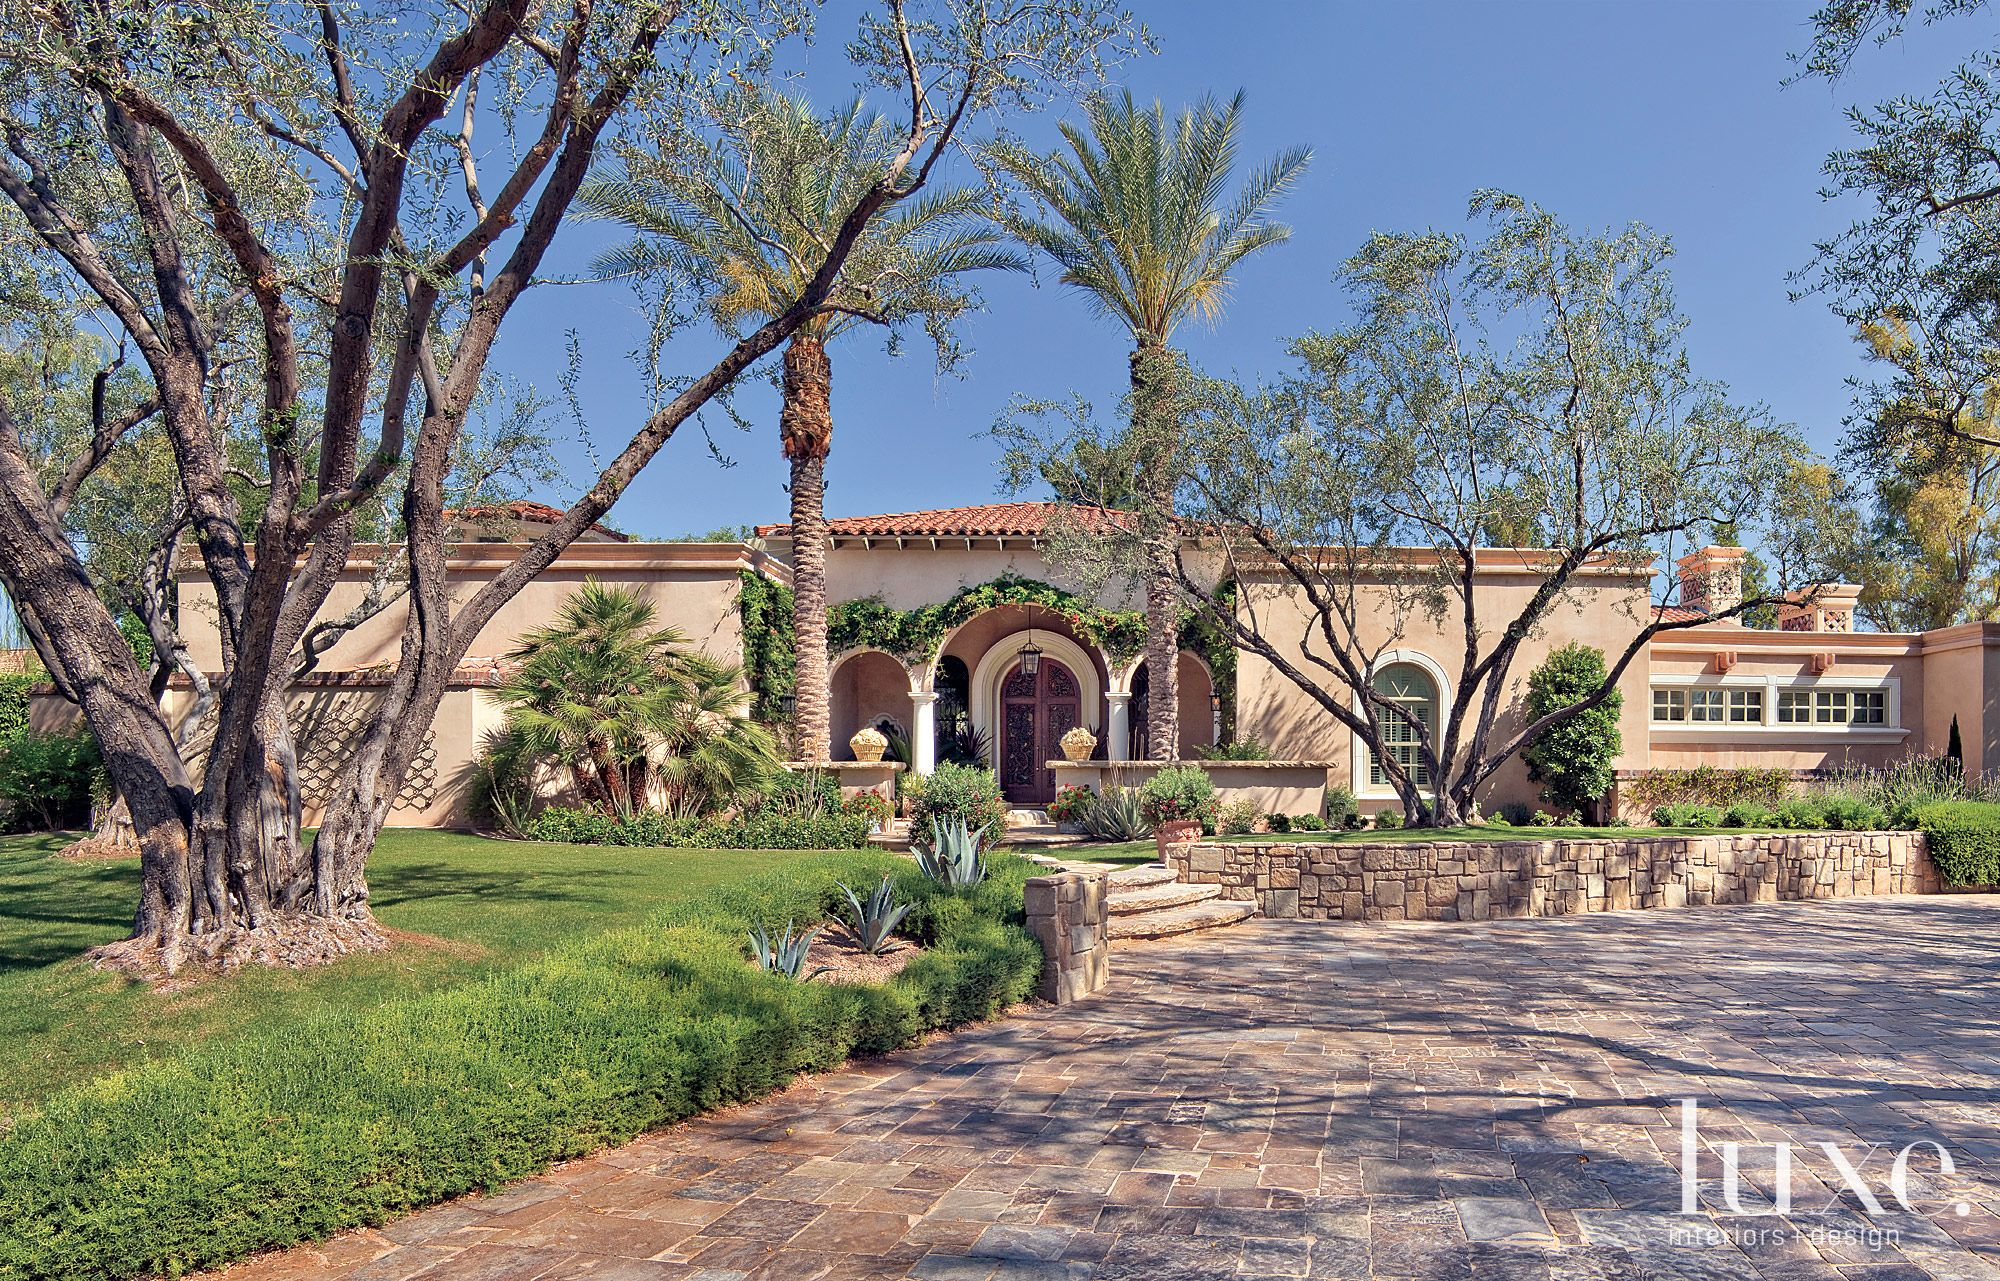 Stucco Spanish-Style Front Exterior